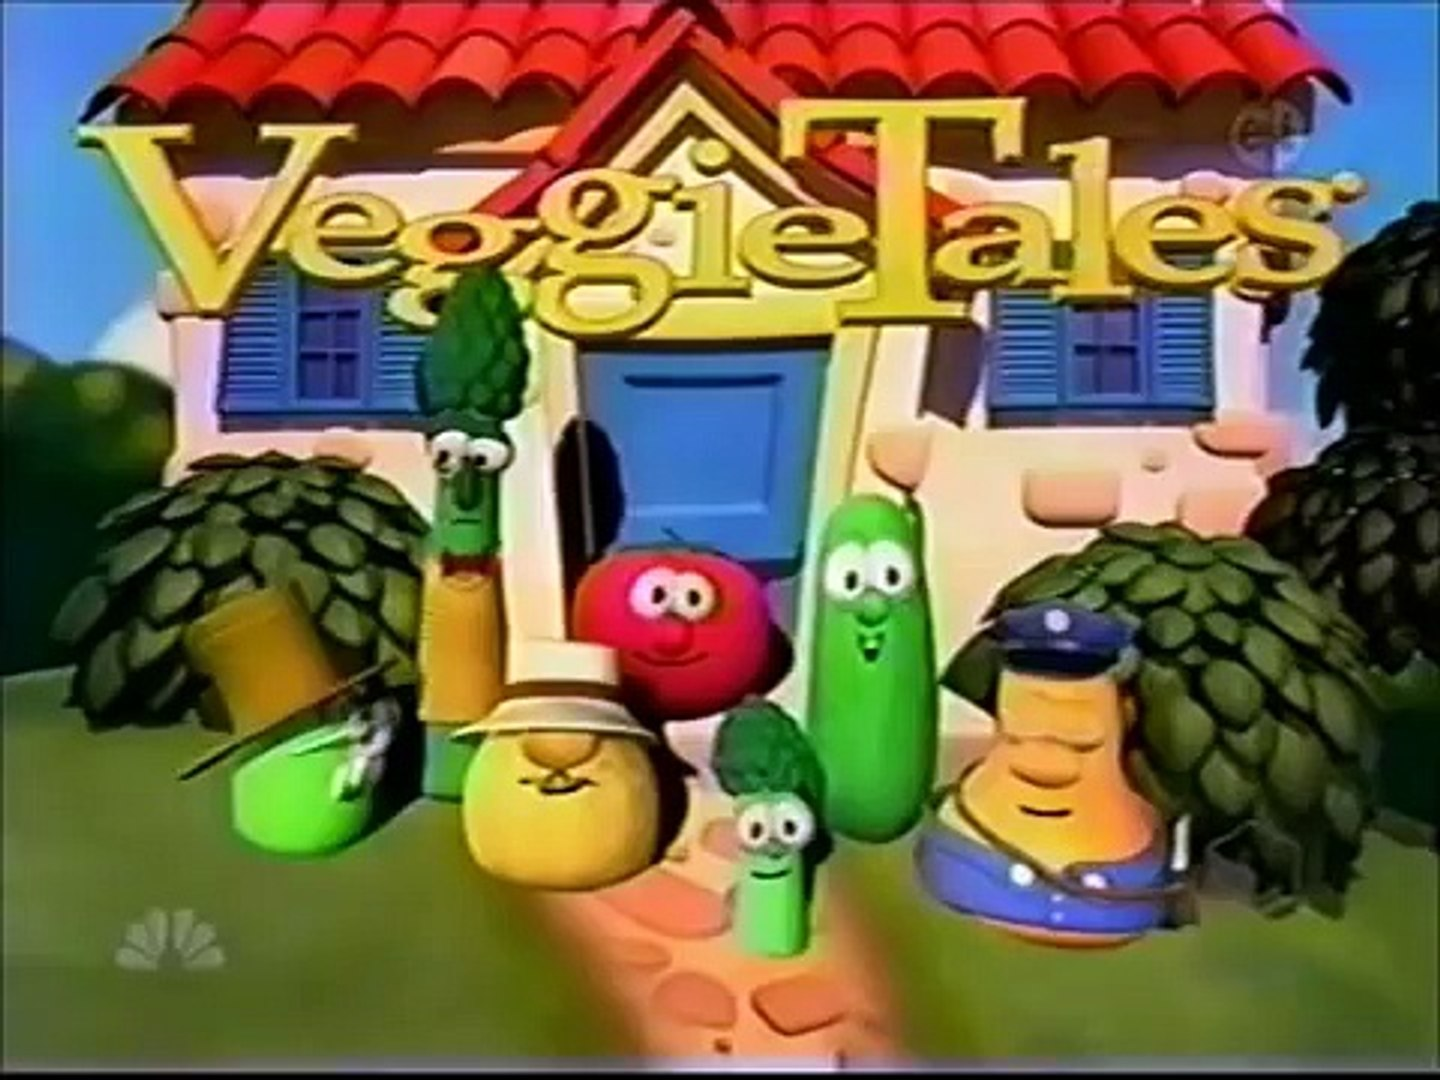 VeggieTales TV Scenes - Larry Boy! & The Fib from Outer Space!